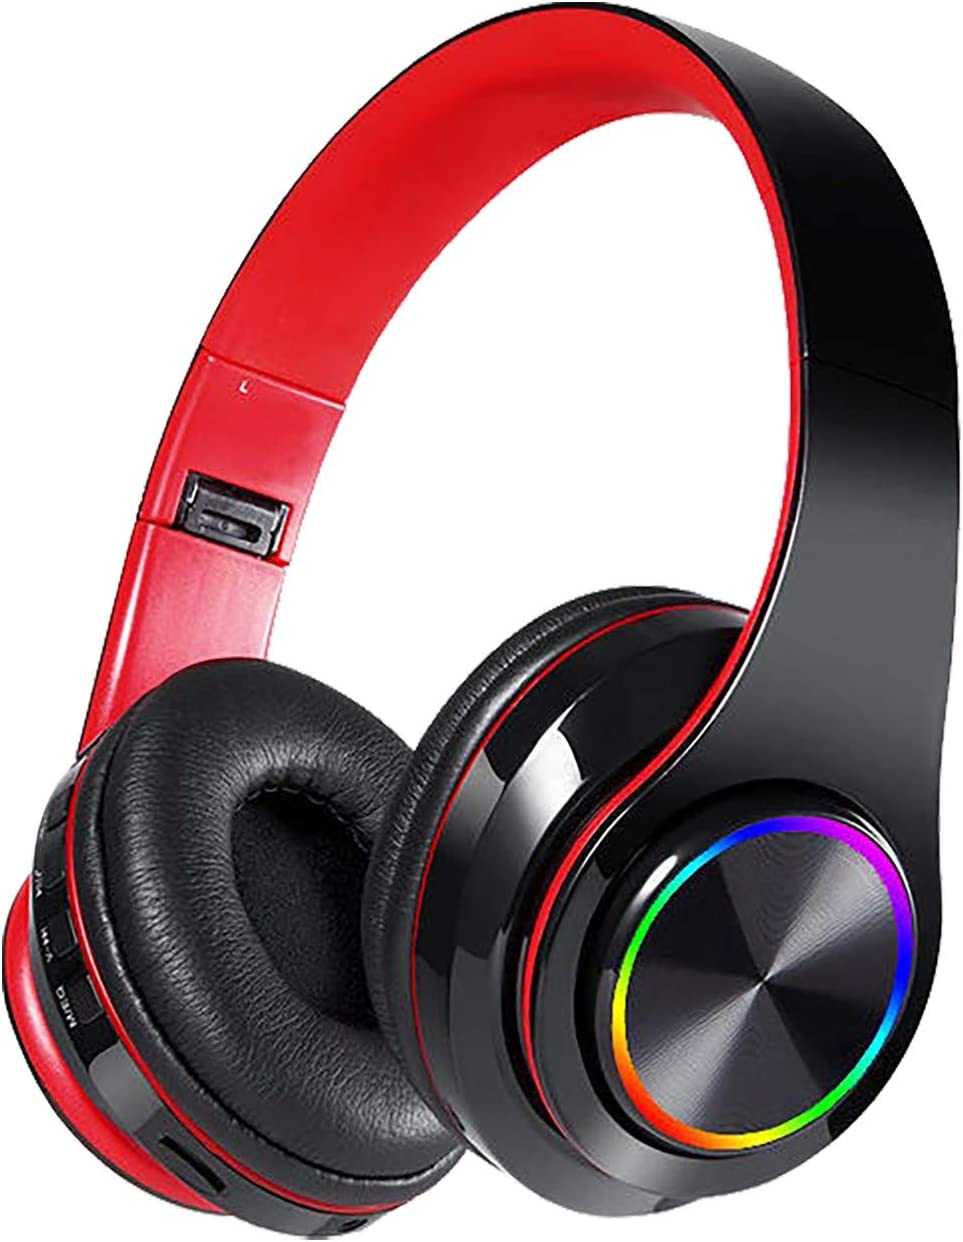 KITIYYT Wireless Bluetooth Headphones with Noise Cancelling Over Ear Stereo Earphones, 7.1 Surround Sound Headphones with Noise Cancelling Microphone Memory Foam Ear Pads RGB Lights for Laptops(Red)